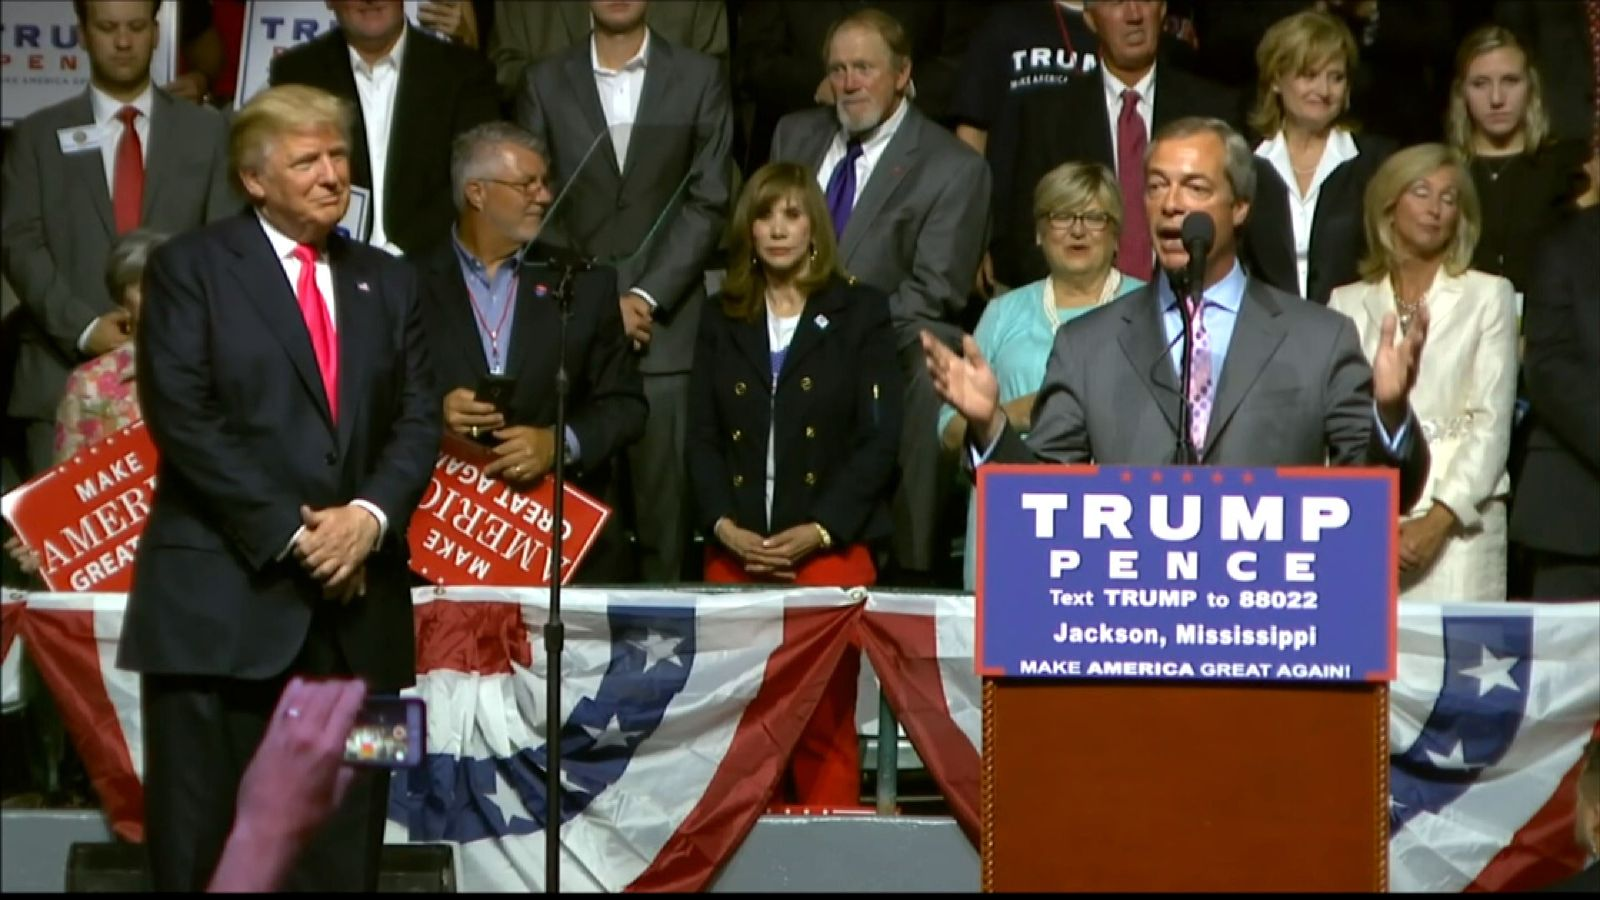 Nigel Farage addresses a Donald Trump rally in Mississippi